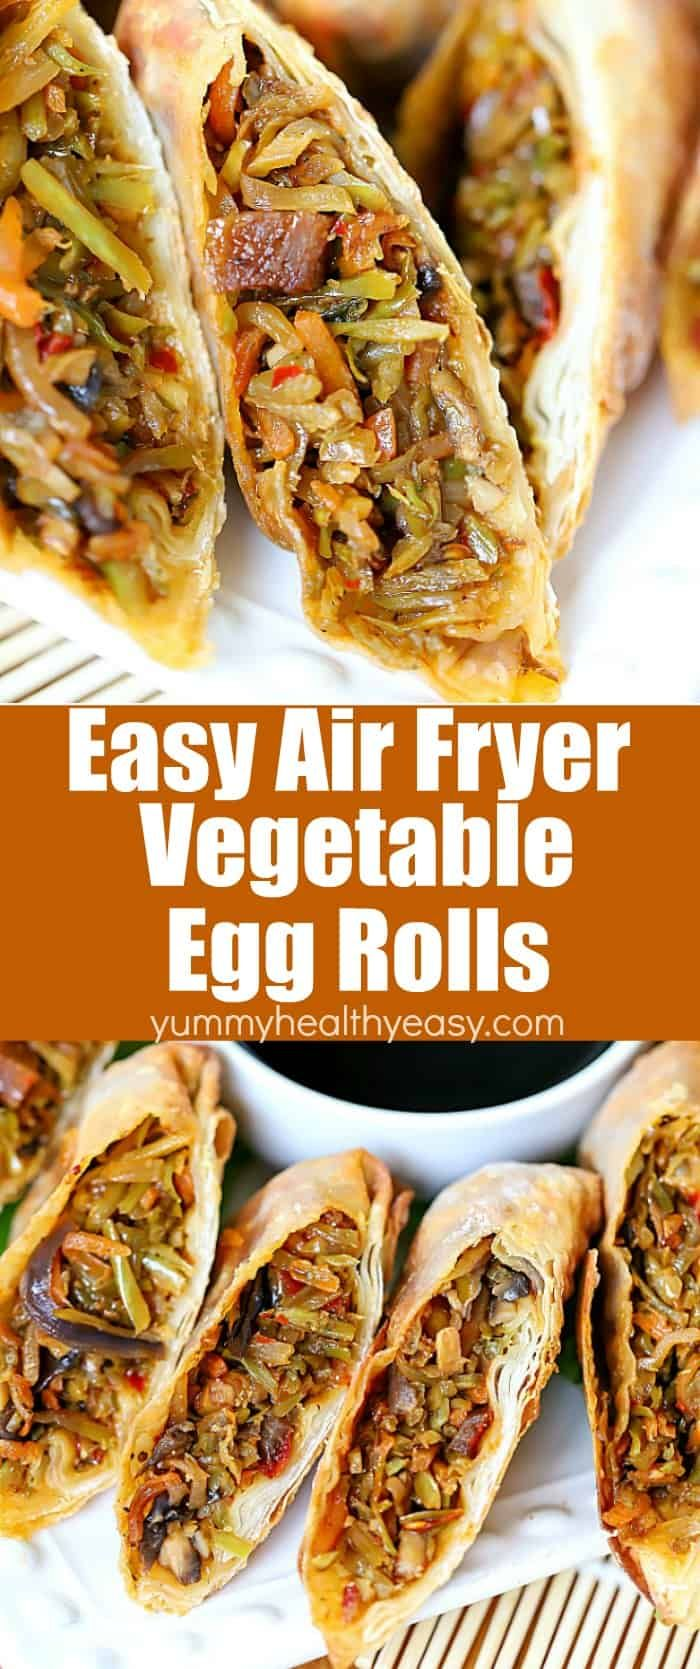 This delicious Homemade Vegetable Egg Roll Recipe is made